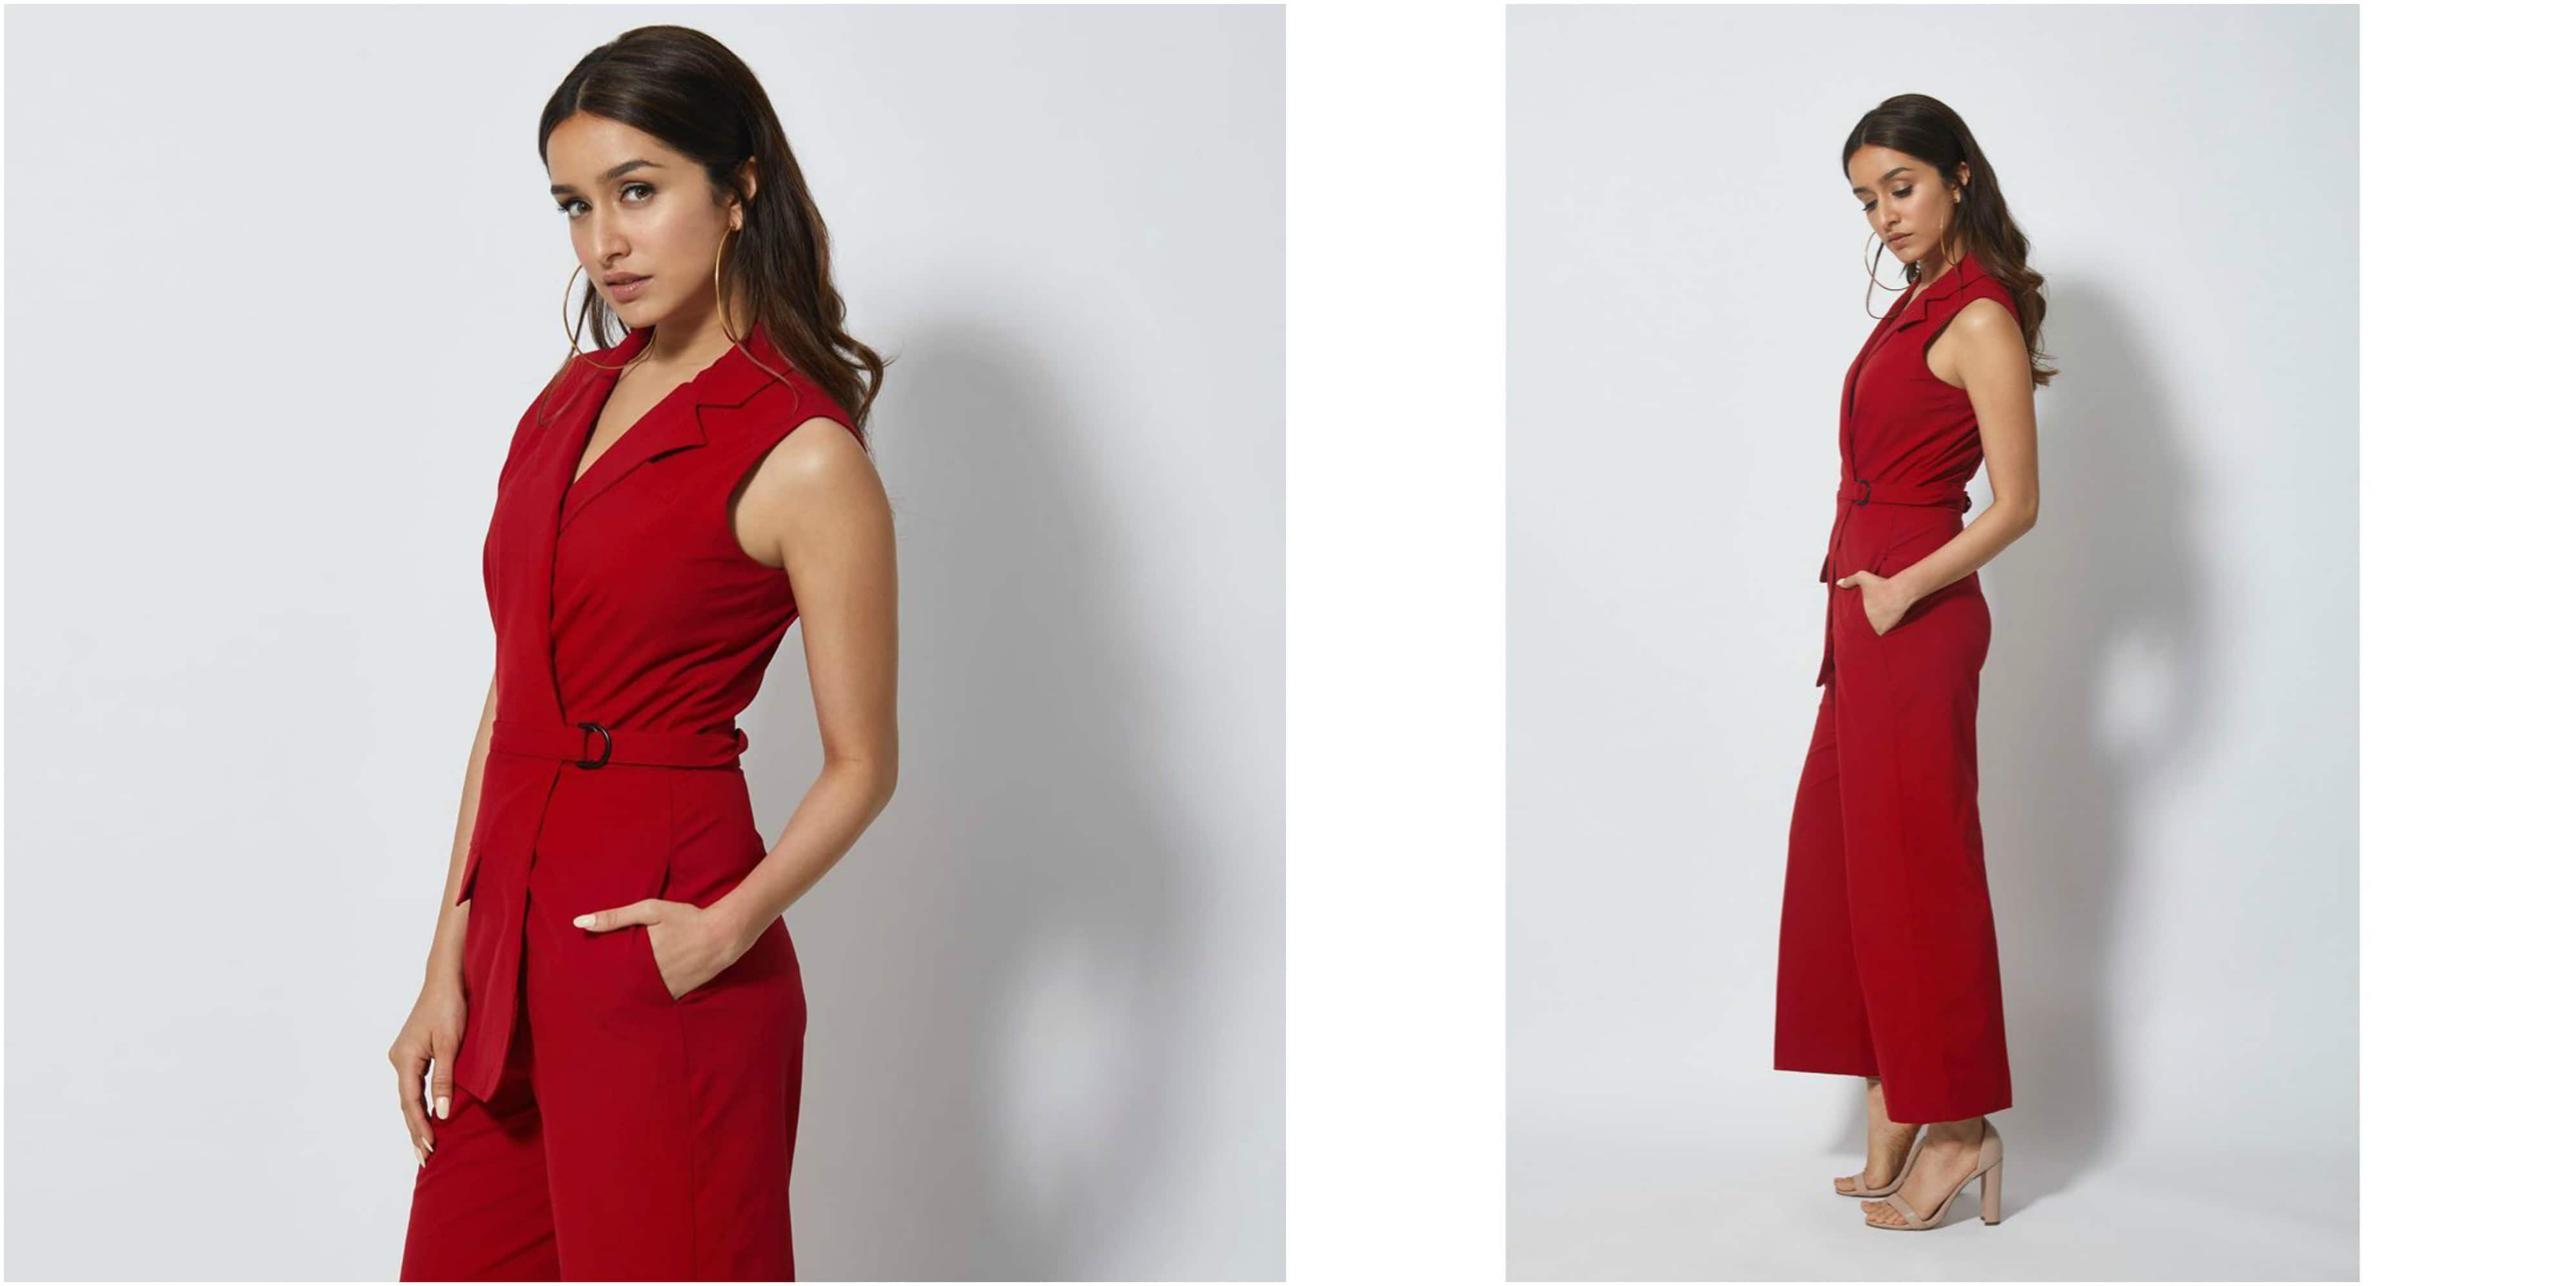 Shraddha Kapoor Nails The Classic Chic Look In A Red Jumpsuit And So Can You